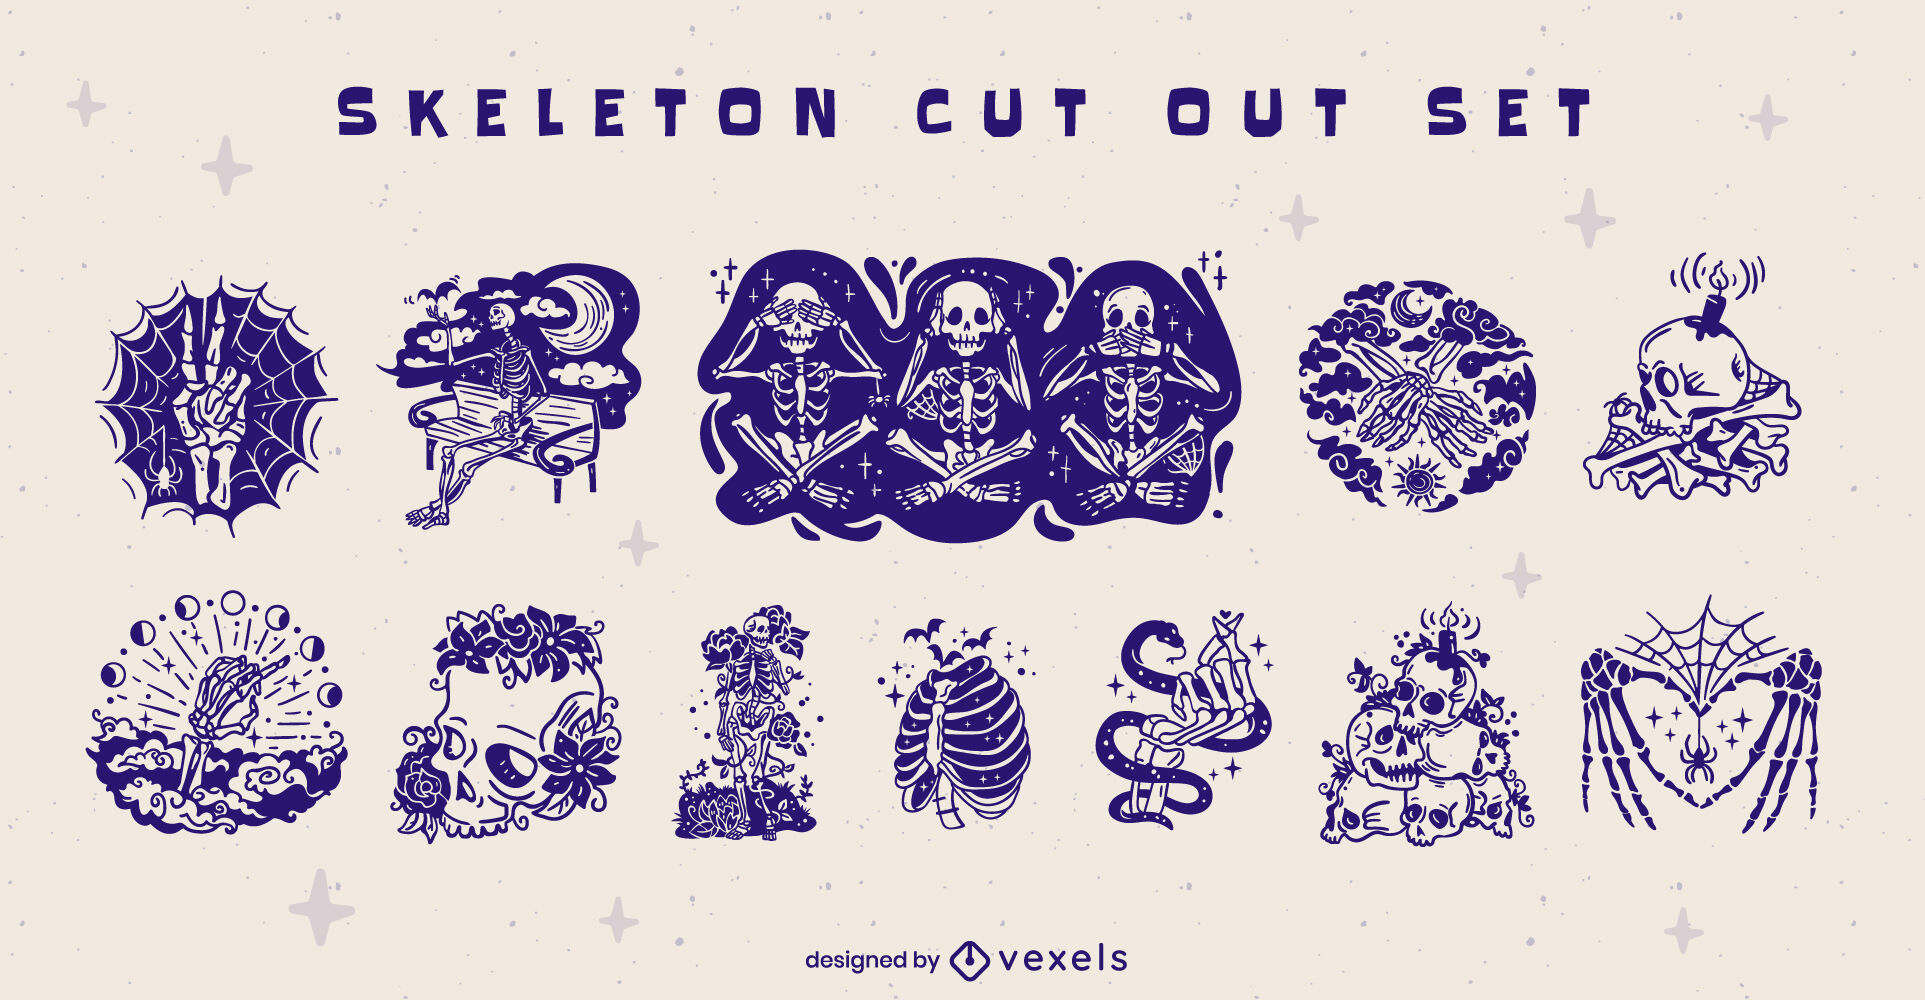 Scary halloween skeletons cut out set